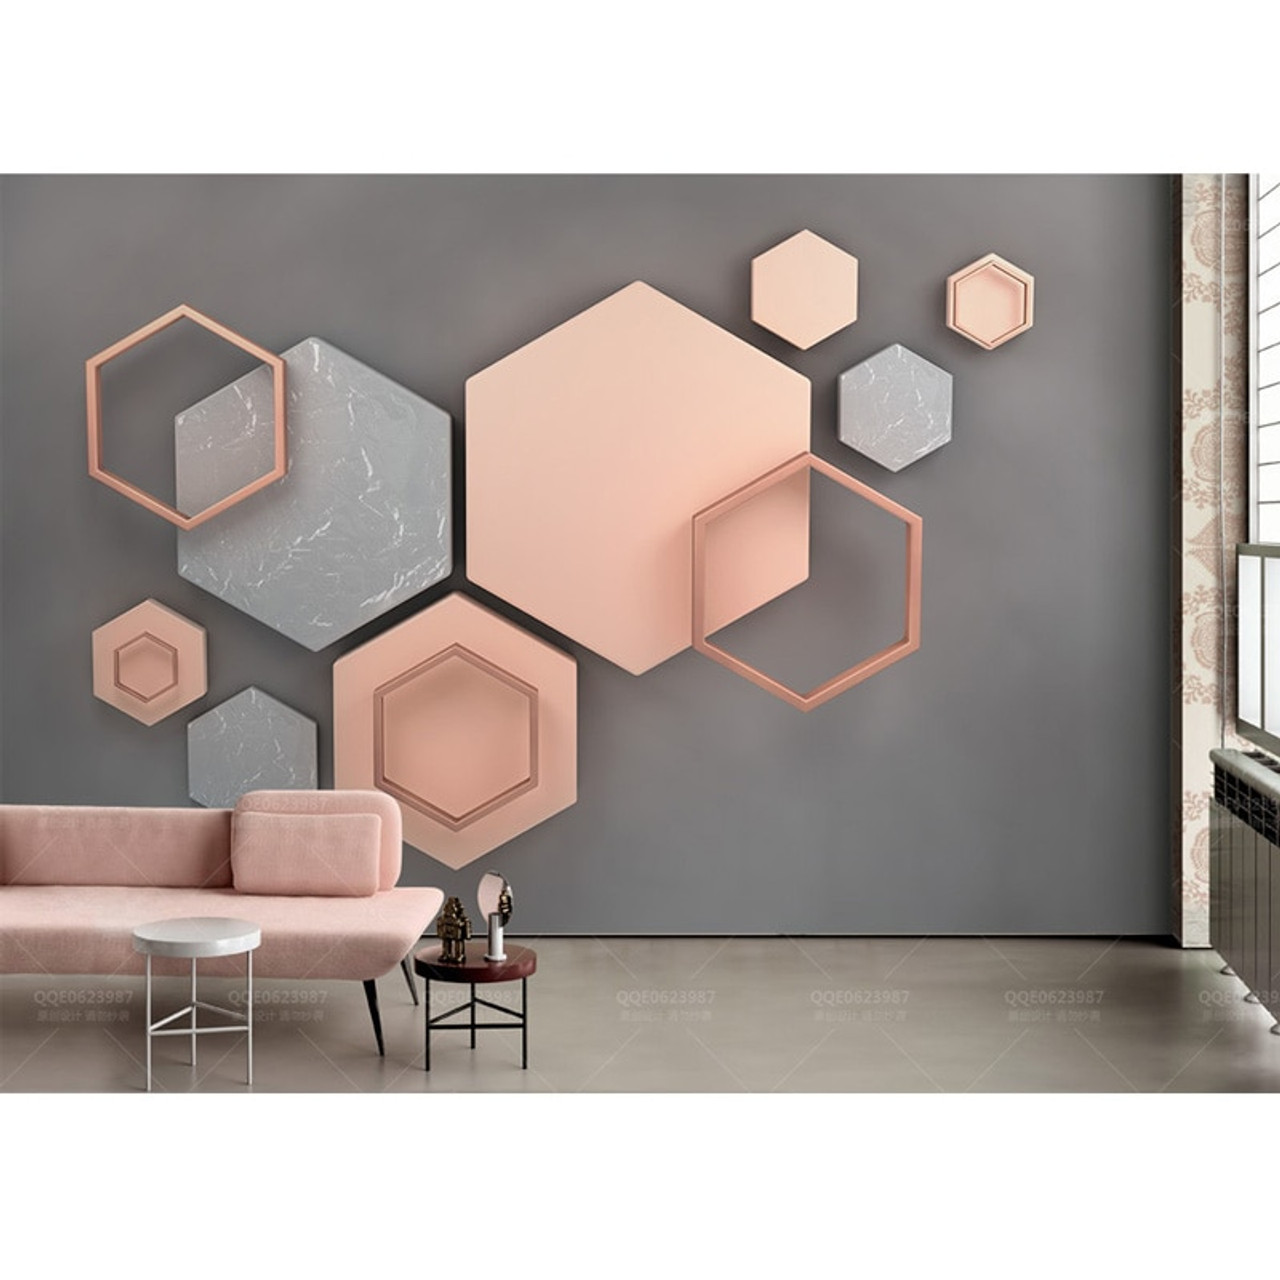 Home Decor Wall Papers Stickers Modern 3D Geometric Photo Wallpaper Mural  Living Room Bedroom Self Adhesive Vinyl/Silk Wallpaper - OnshopDeals.Com